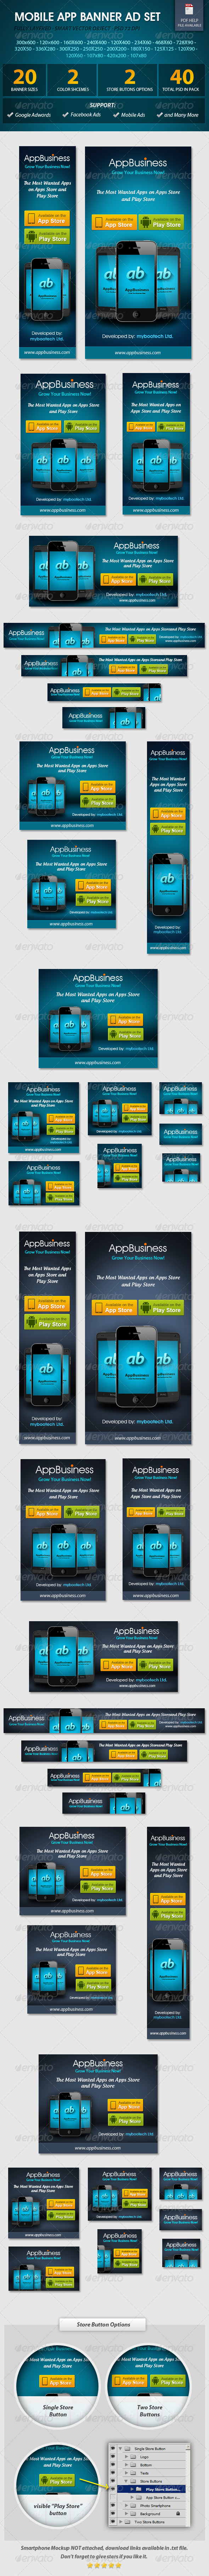 GraphicRiver Mobile App Banner ad Set 5490594